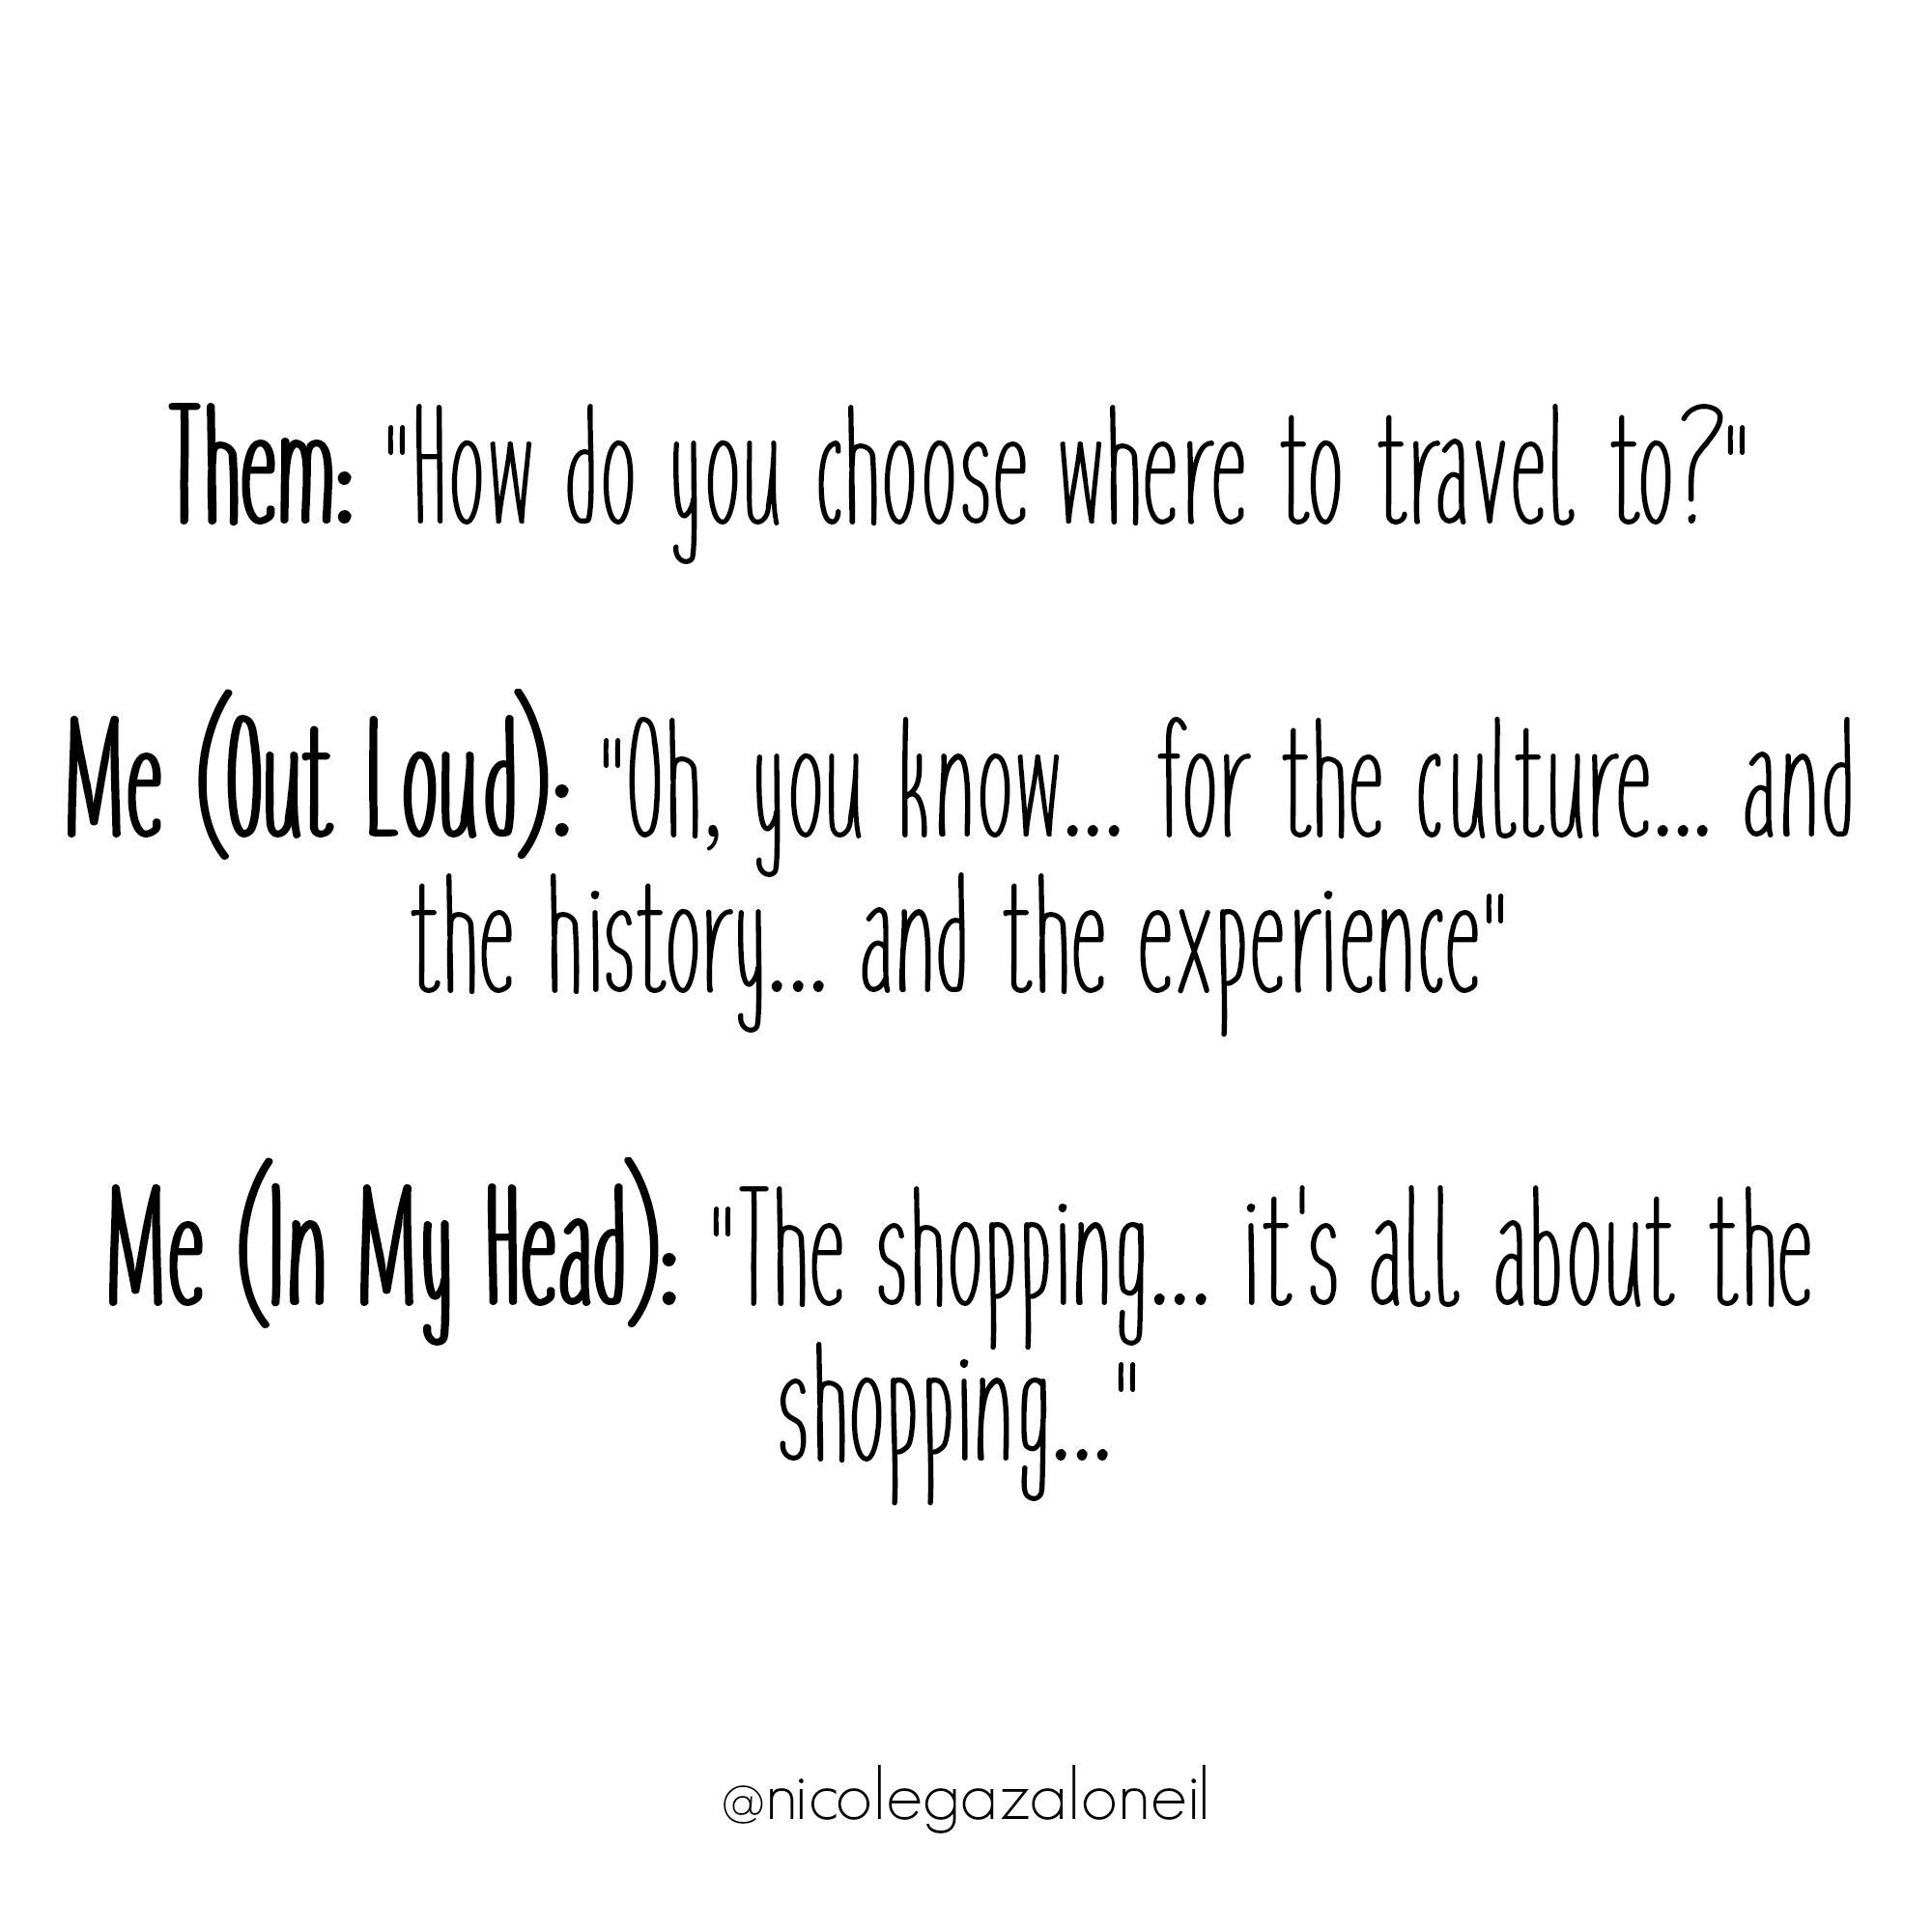 It's All About The Shopping